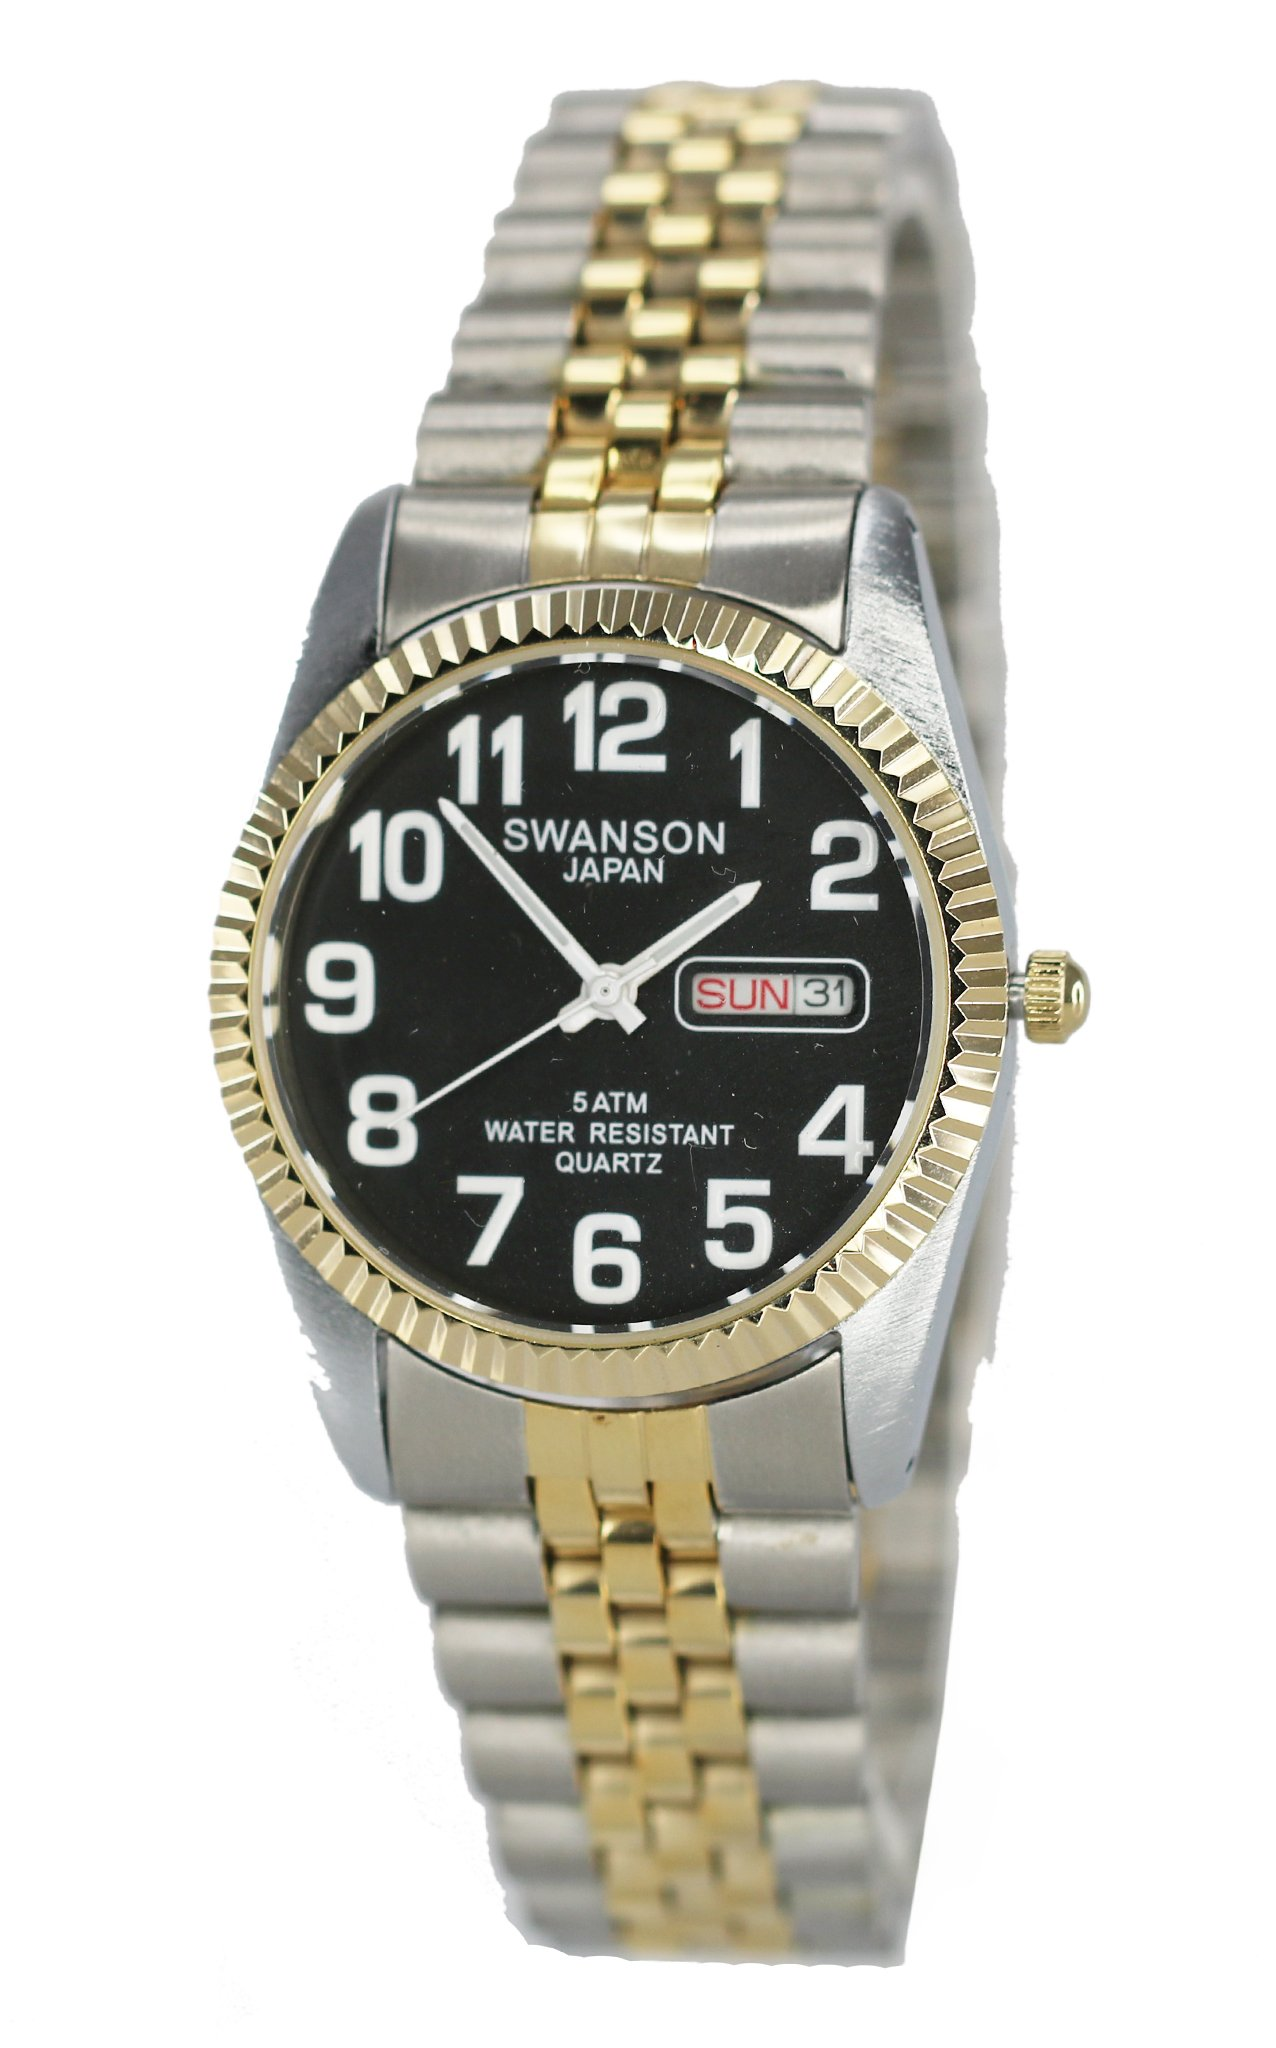 Swanson Men's Stainless Steel Day-Date Watch Black Dial with Large White Numbers with Travel Case